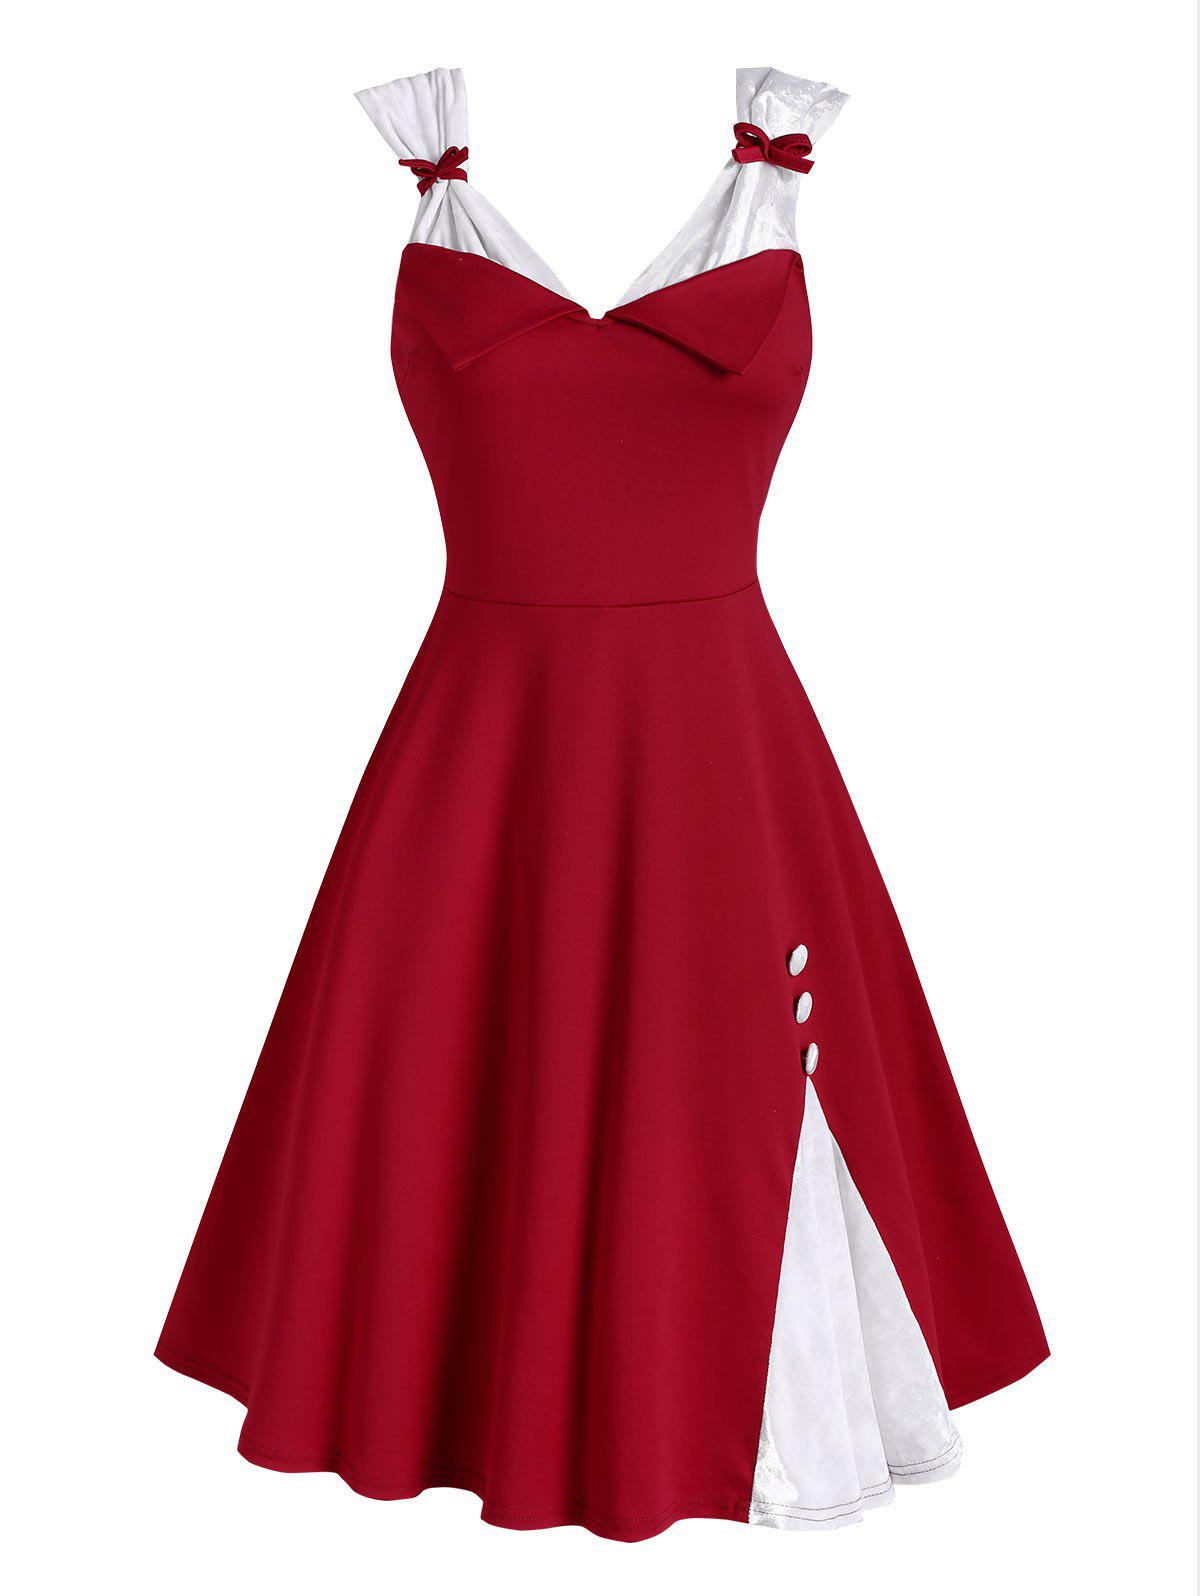 Mock Buttons Bowknot Christmas Velvet Panel Dress - RED L